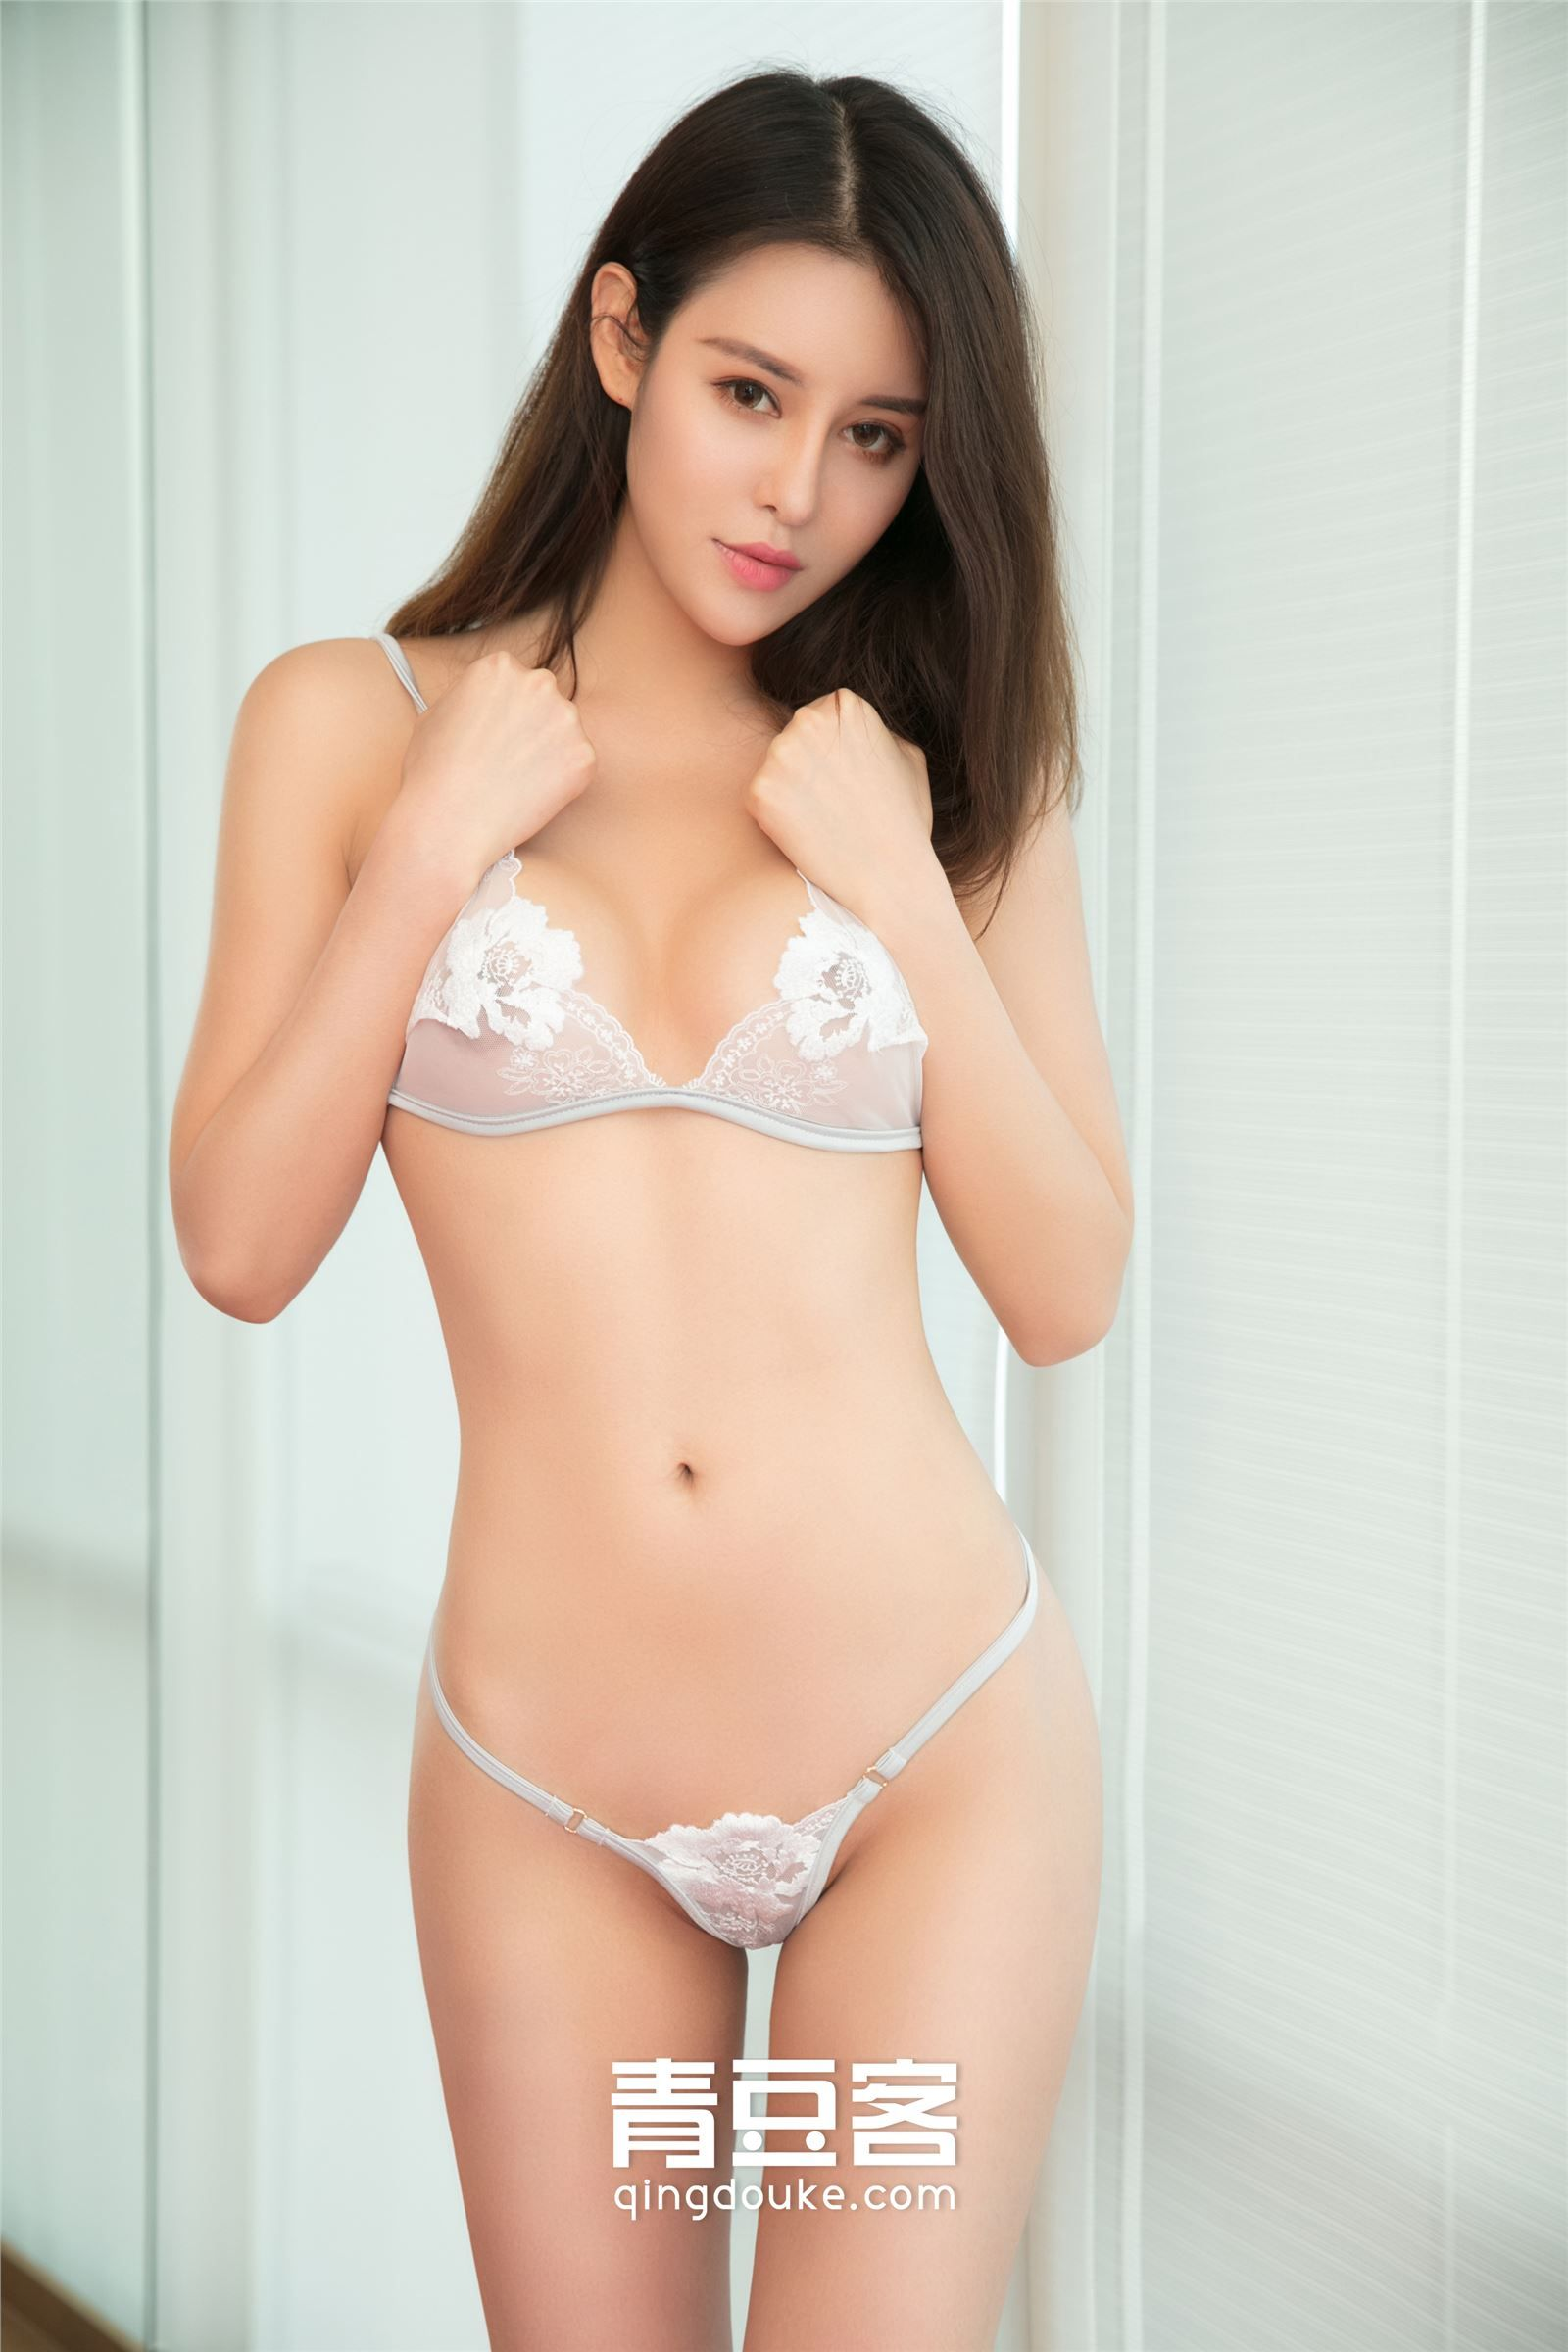 curvy Chinese girl in lingerie